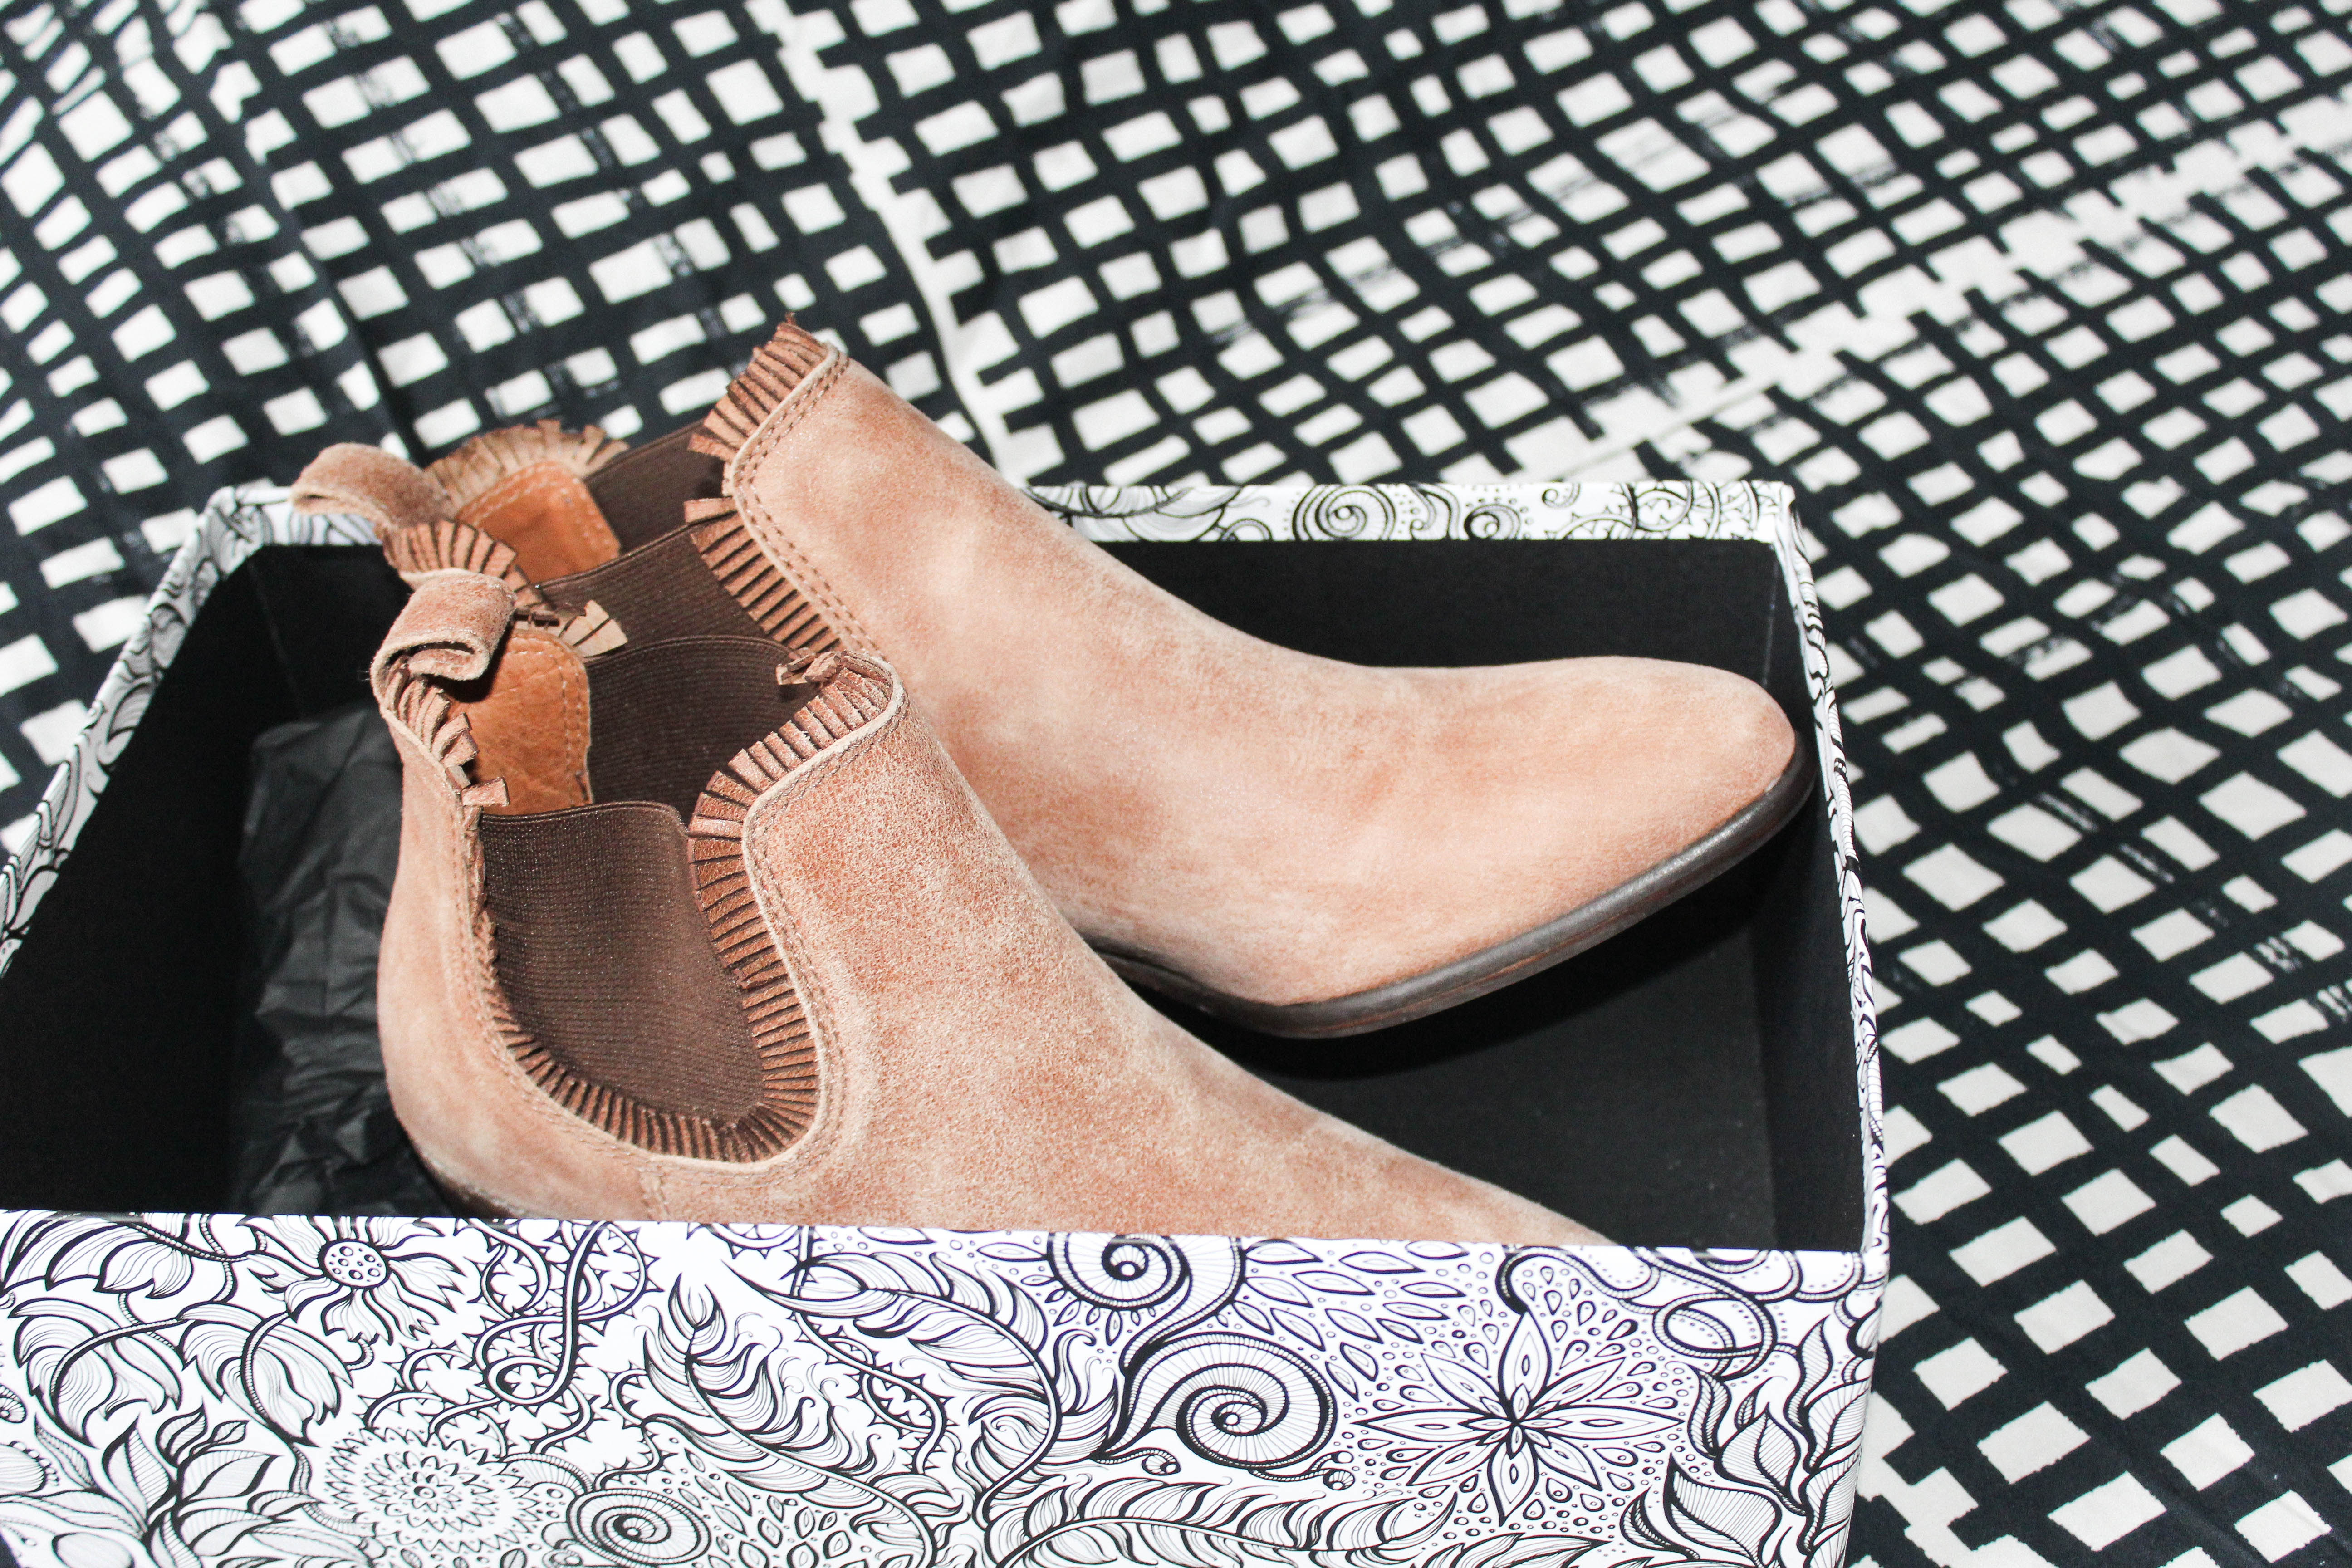 come-back-boots-ted-muffy-mademoisellevi-6